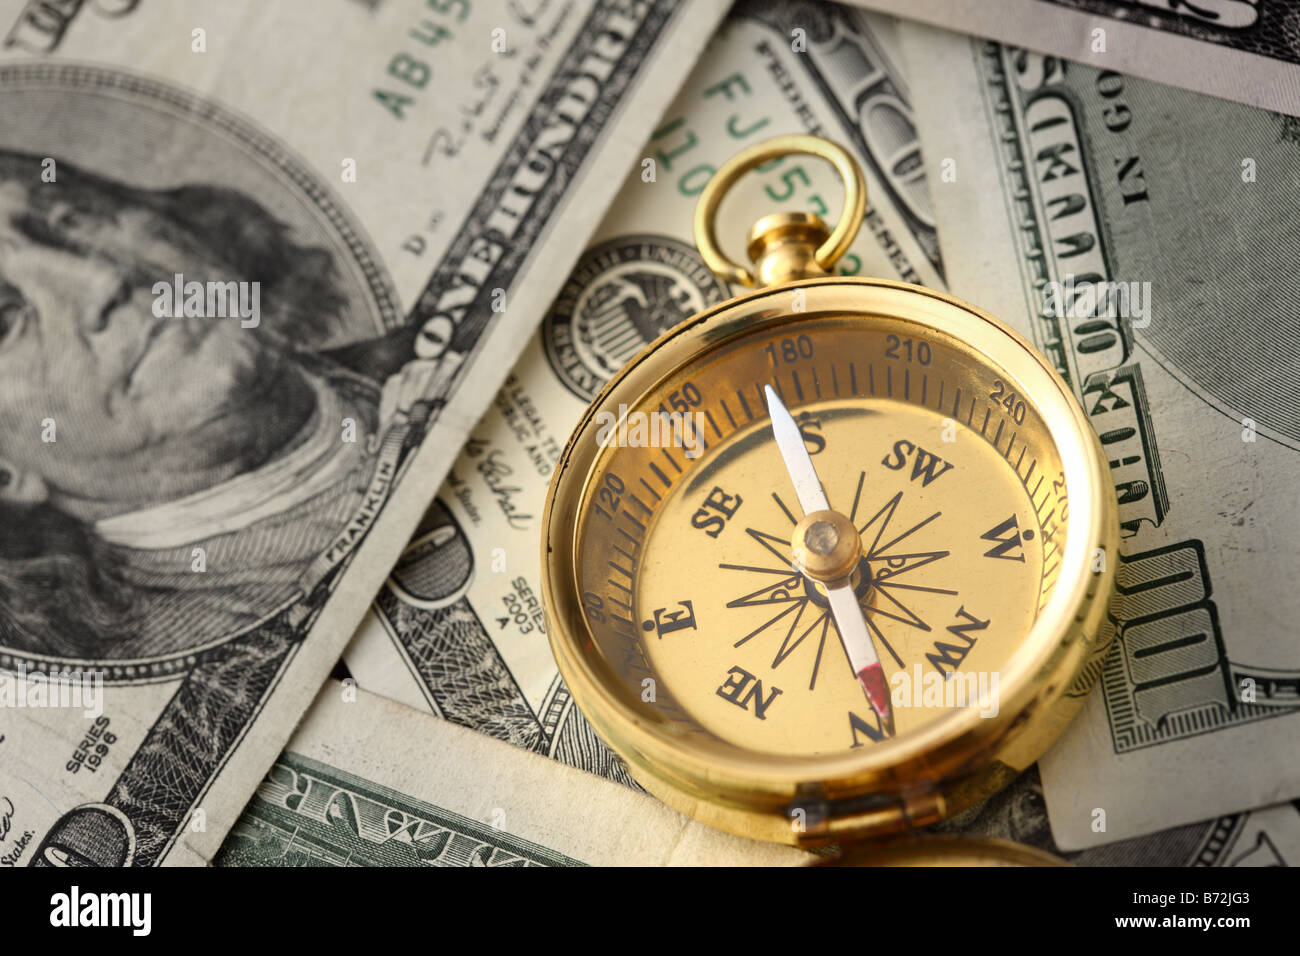 Gold compass on pile of US money - Stock Image